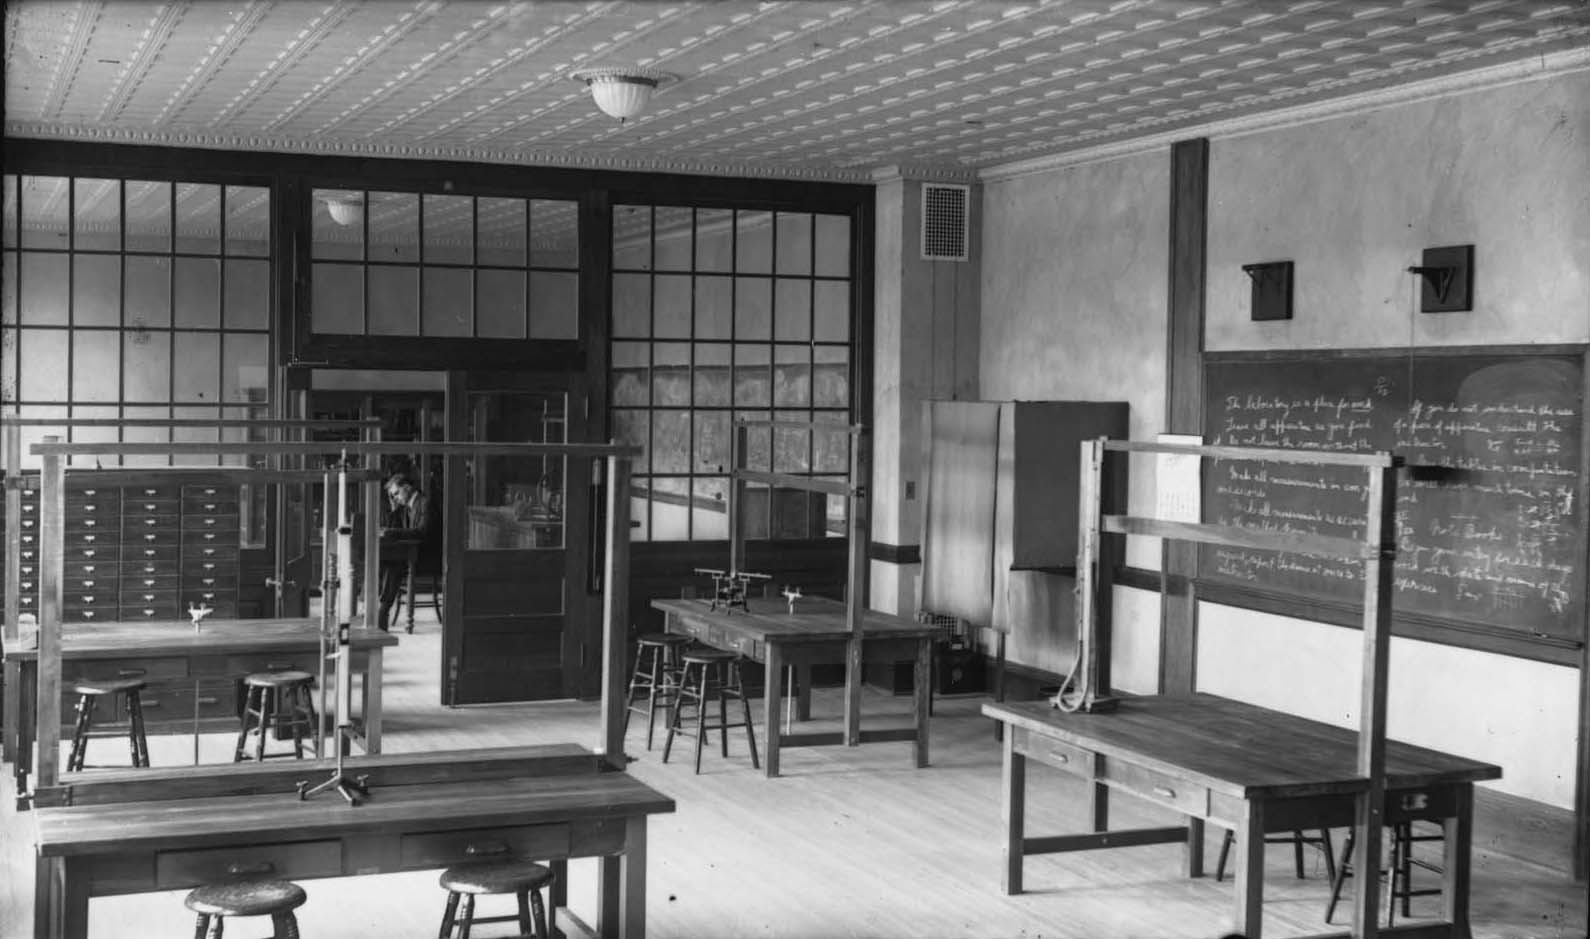 Lewis Hall Laboratory circa 1920